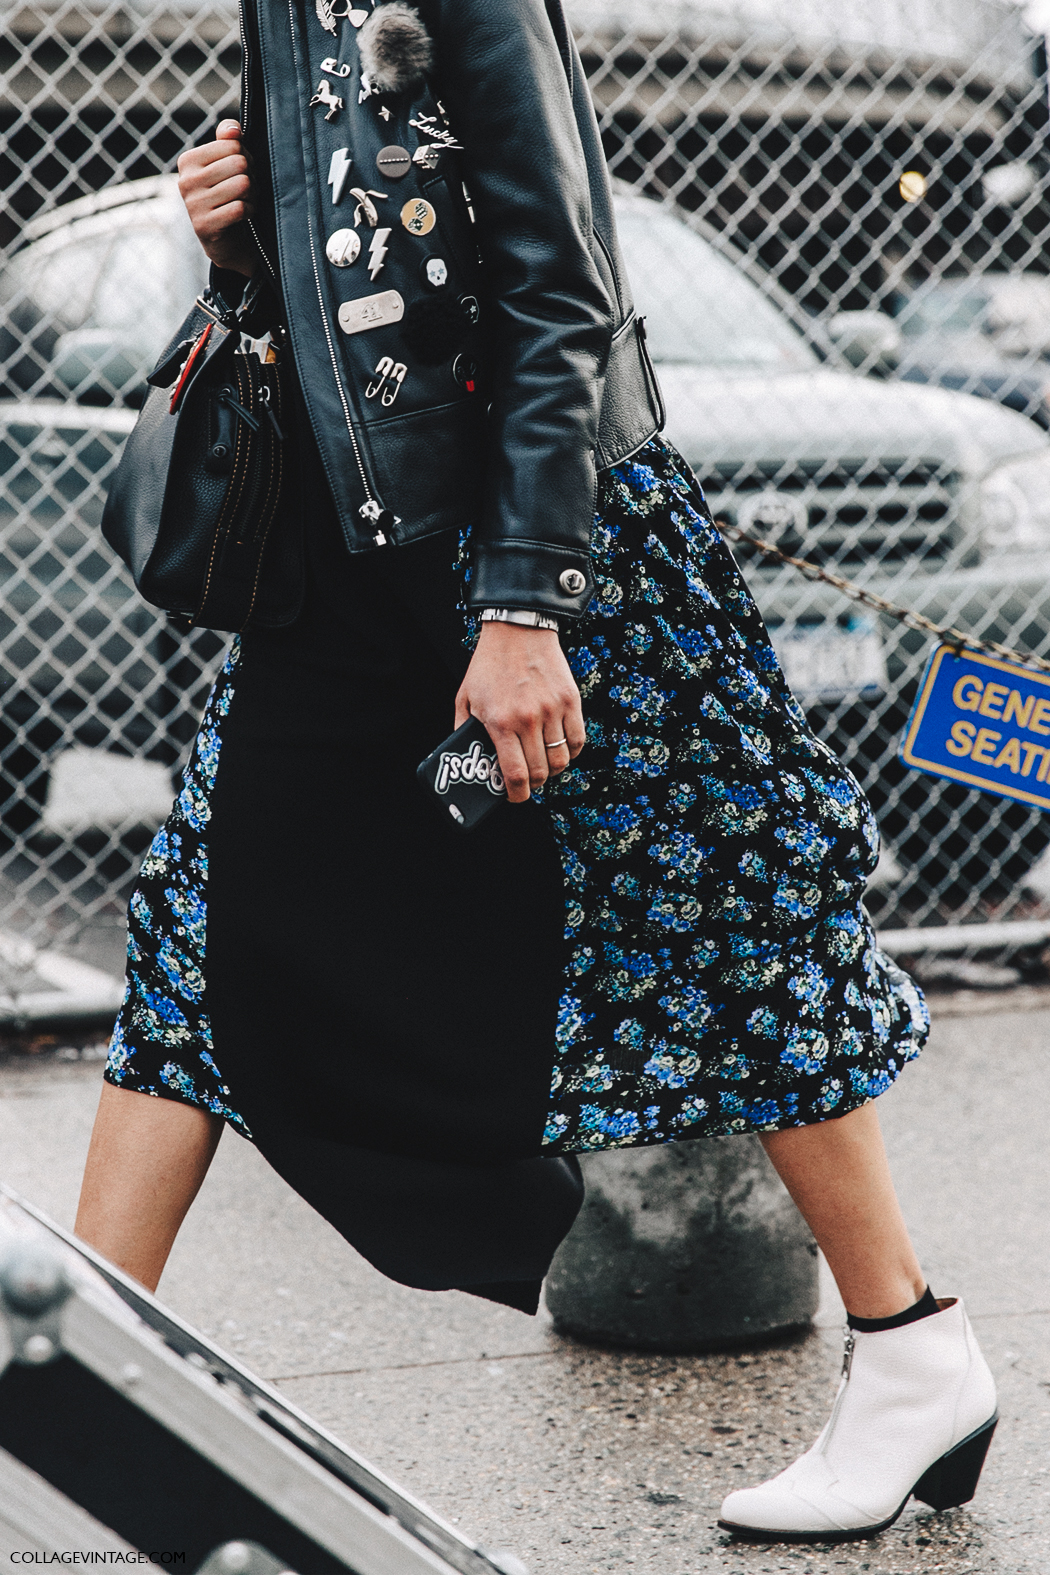 NYFW-New_York_Fashion_Week-Fall_Winter-17-Street_Style-White_Boots-Floral_Dress-Leather_Jacket-Coach-1